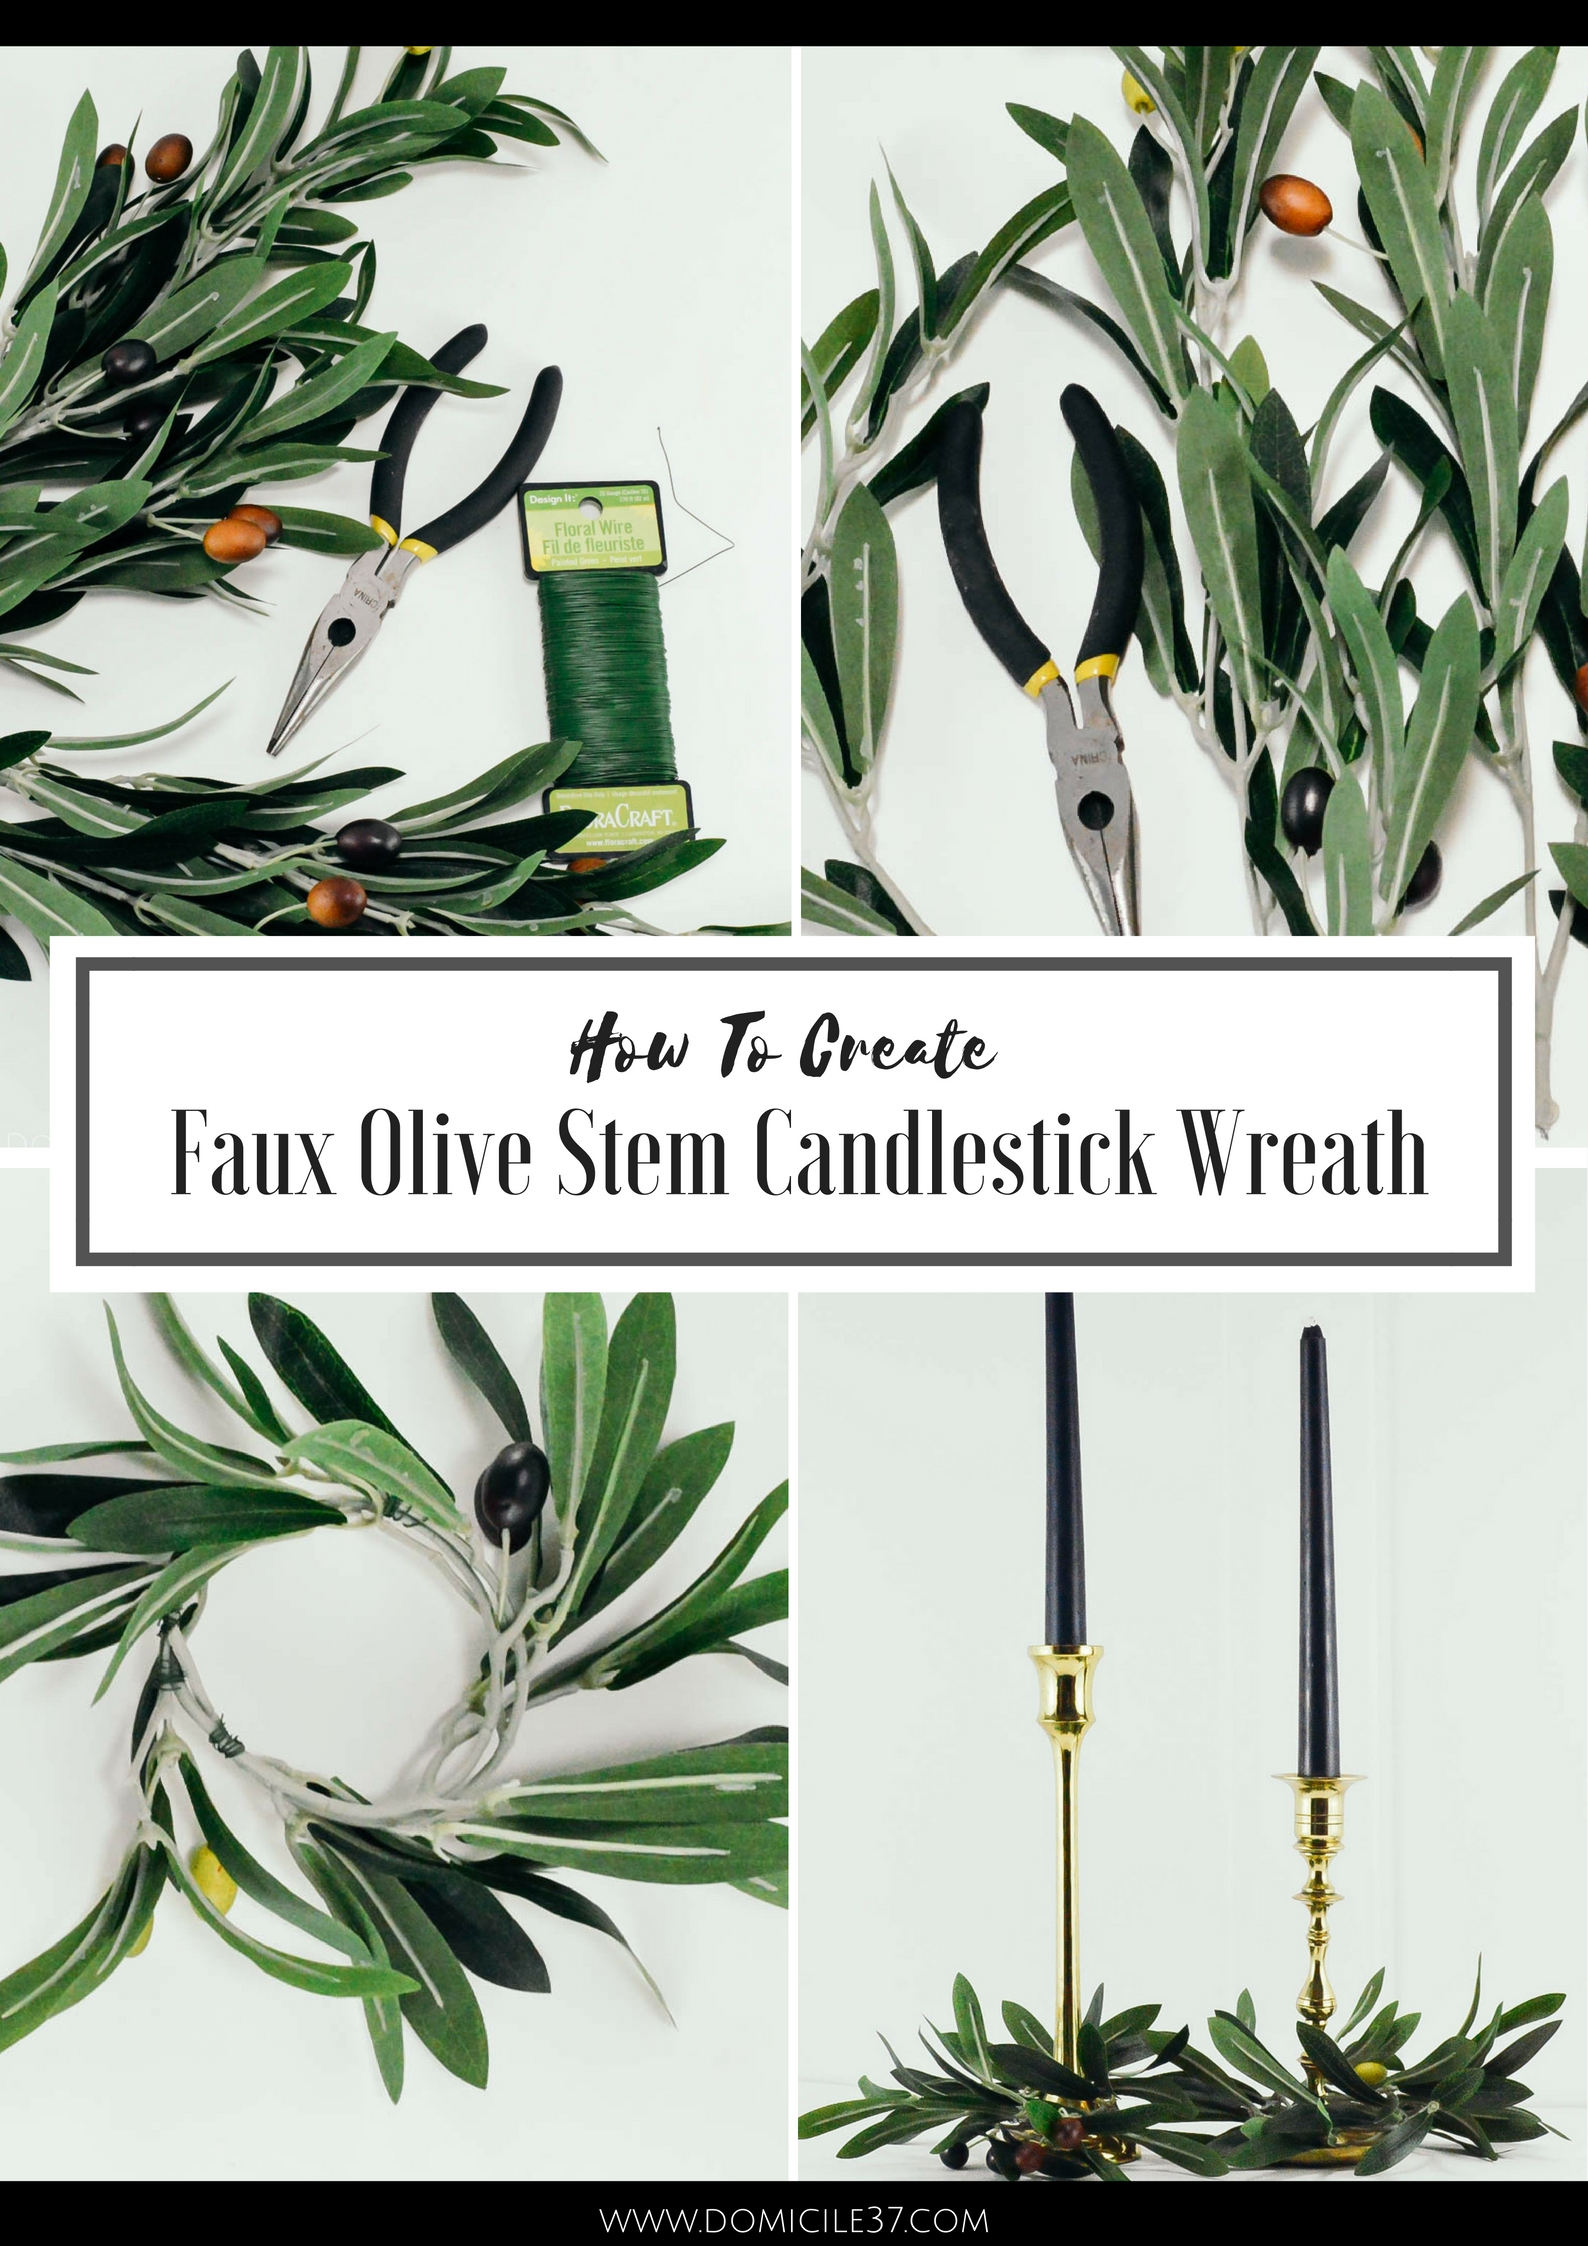 How to make olive stem candlestick wreaths | candlestick wreaths | Decorating with olive branches